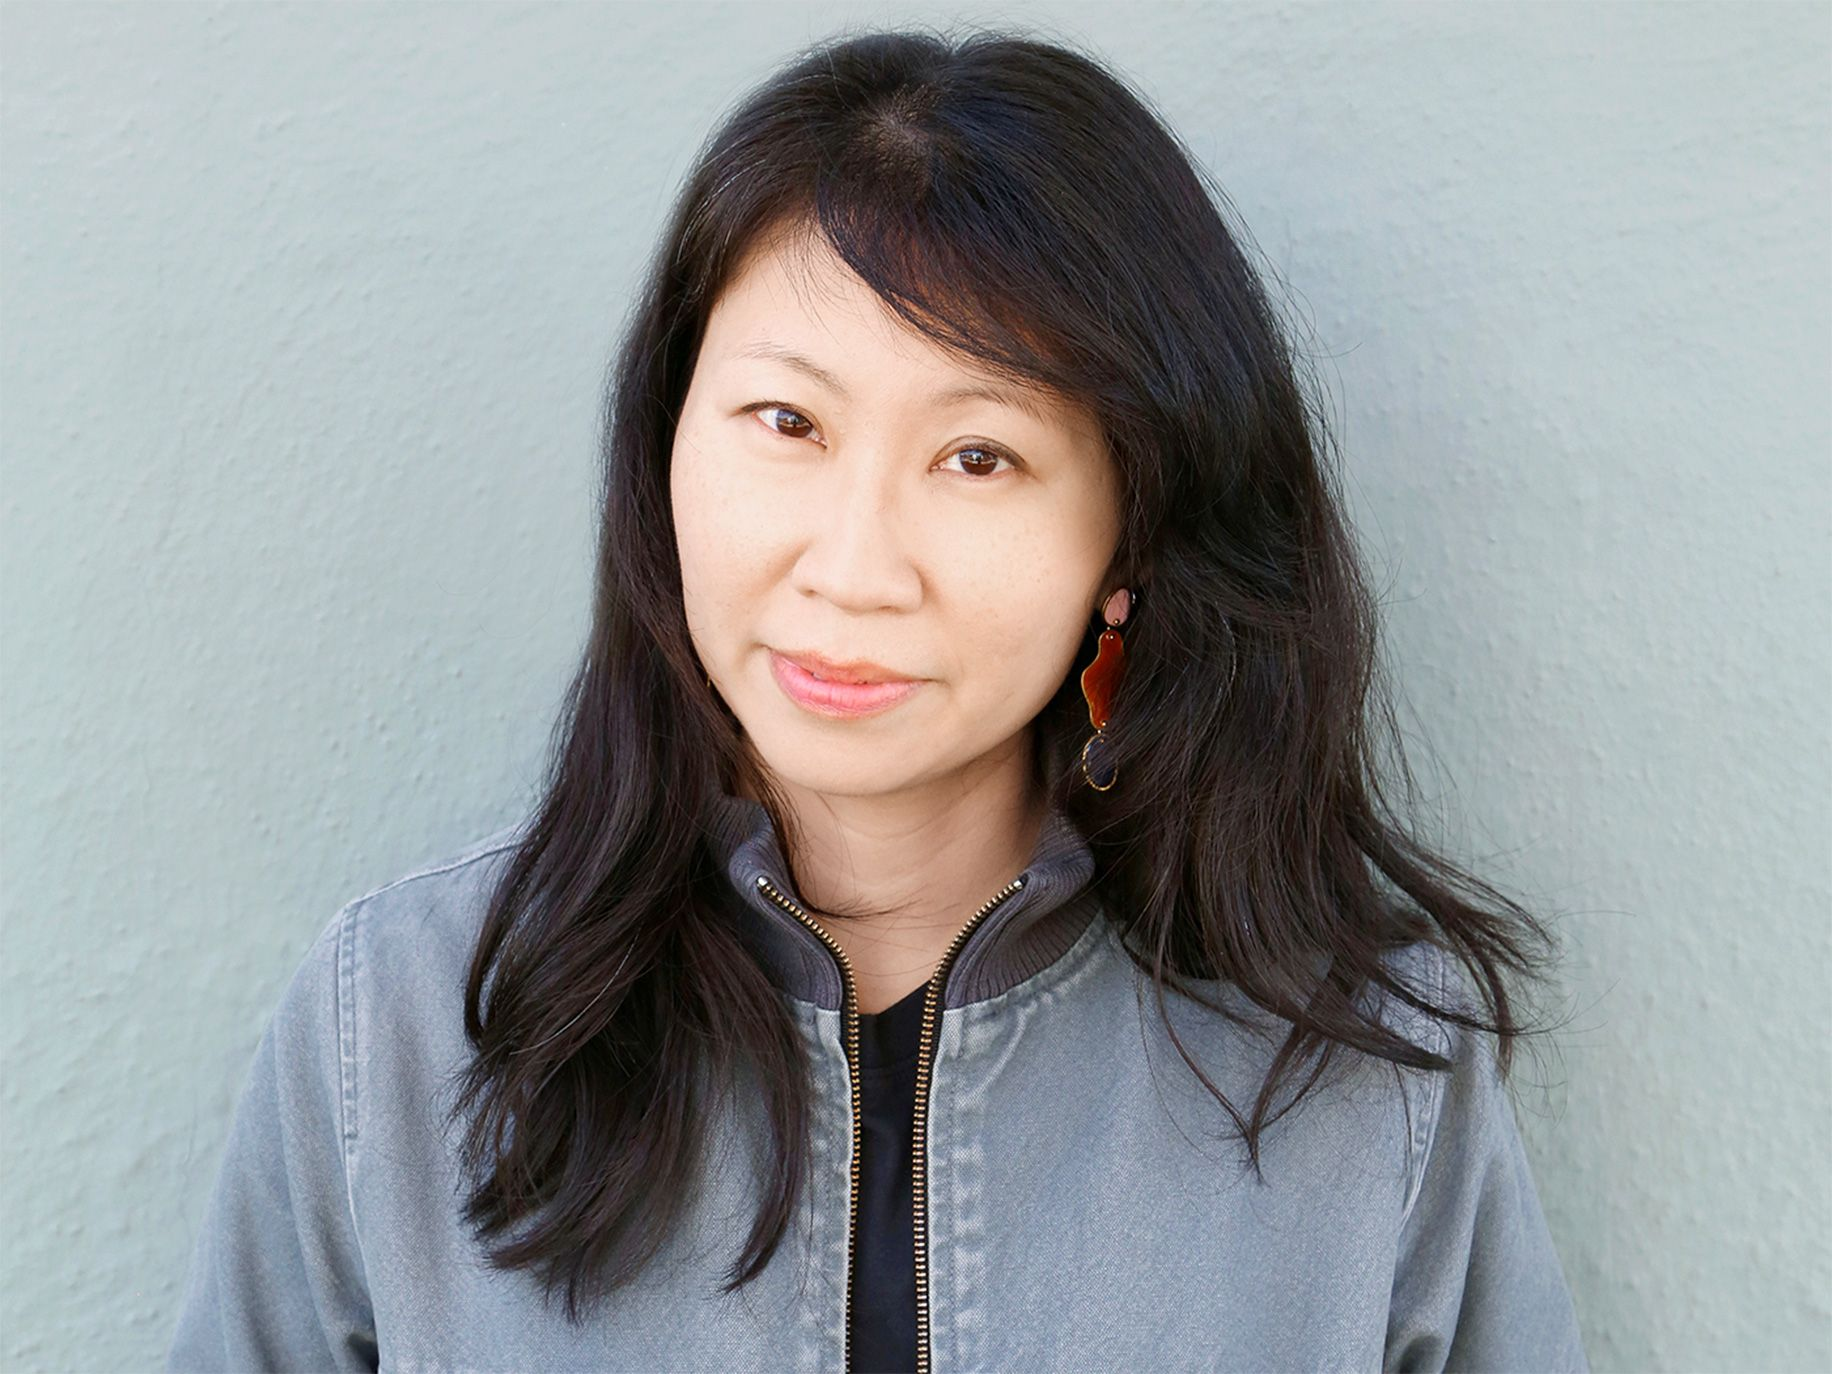 Chia-Chia Lin's The Unpassing is an unvarnished story of an immigrant family that lives up to the nuanced ambiguity of its title.